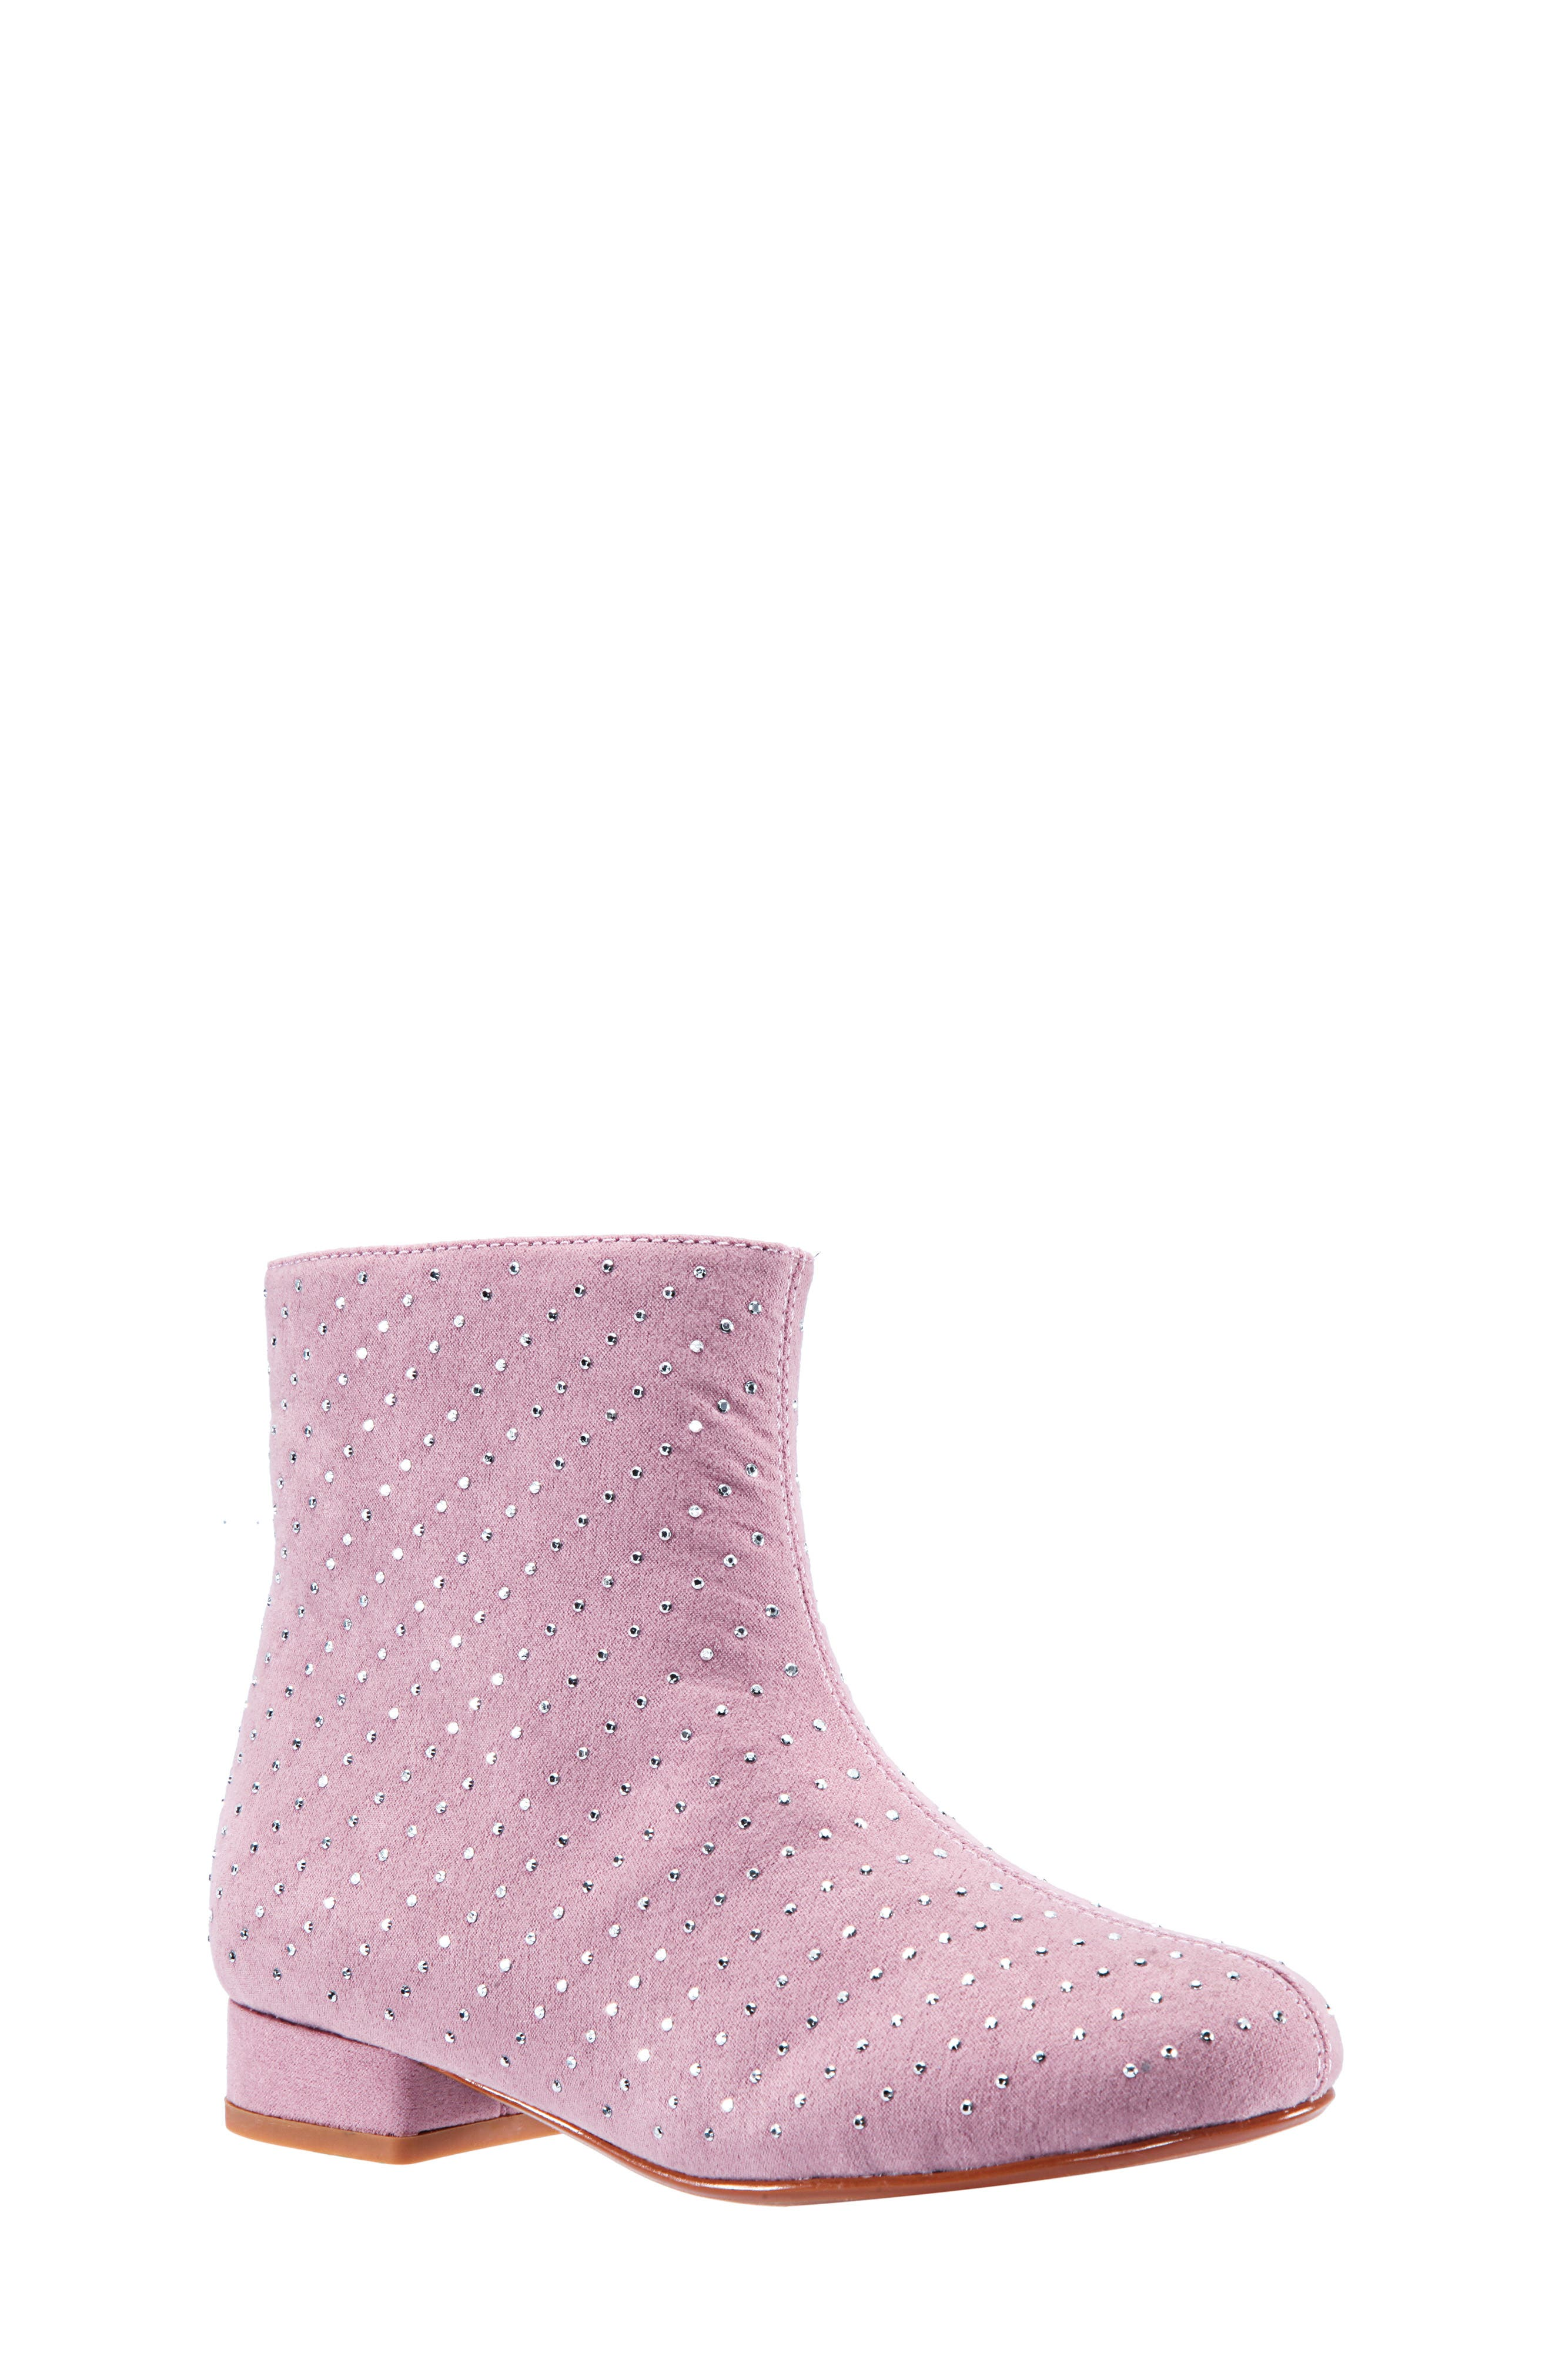 Peaches Studded Bootie,                         Main,                         color, PINK MICRO SUEDE